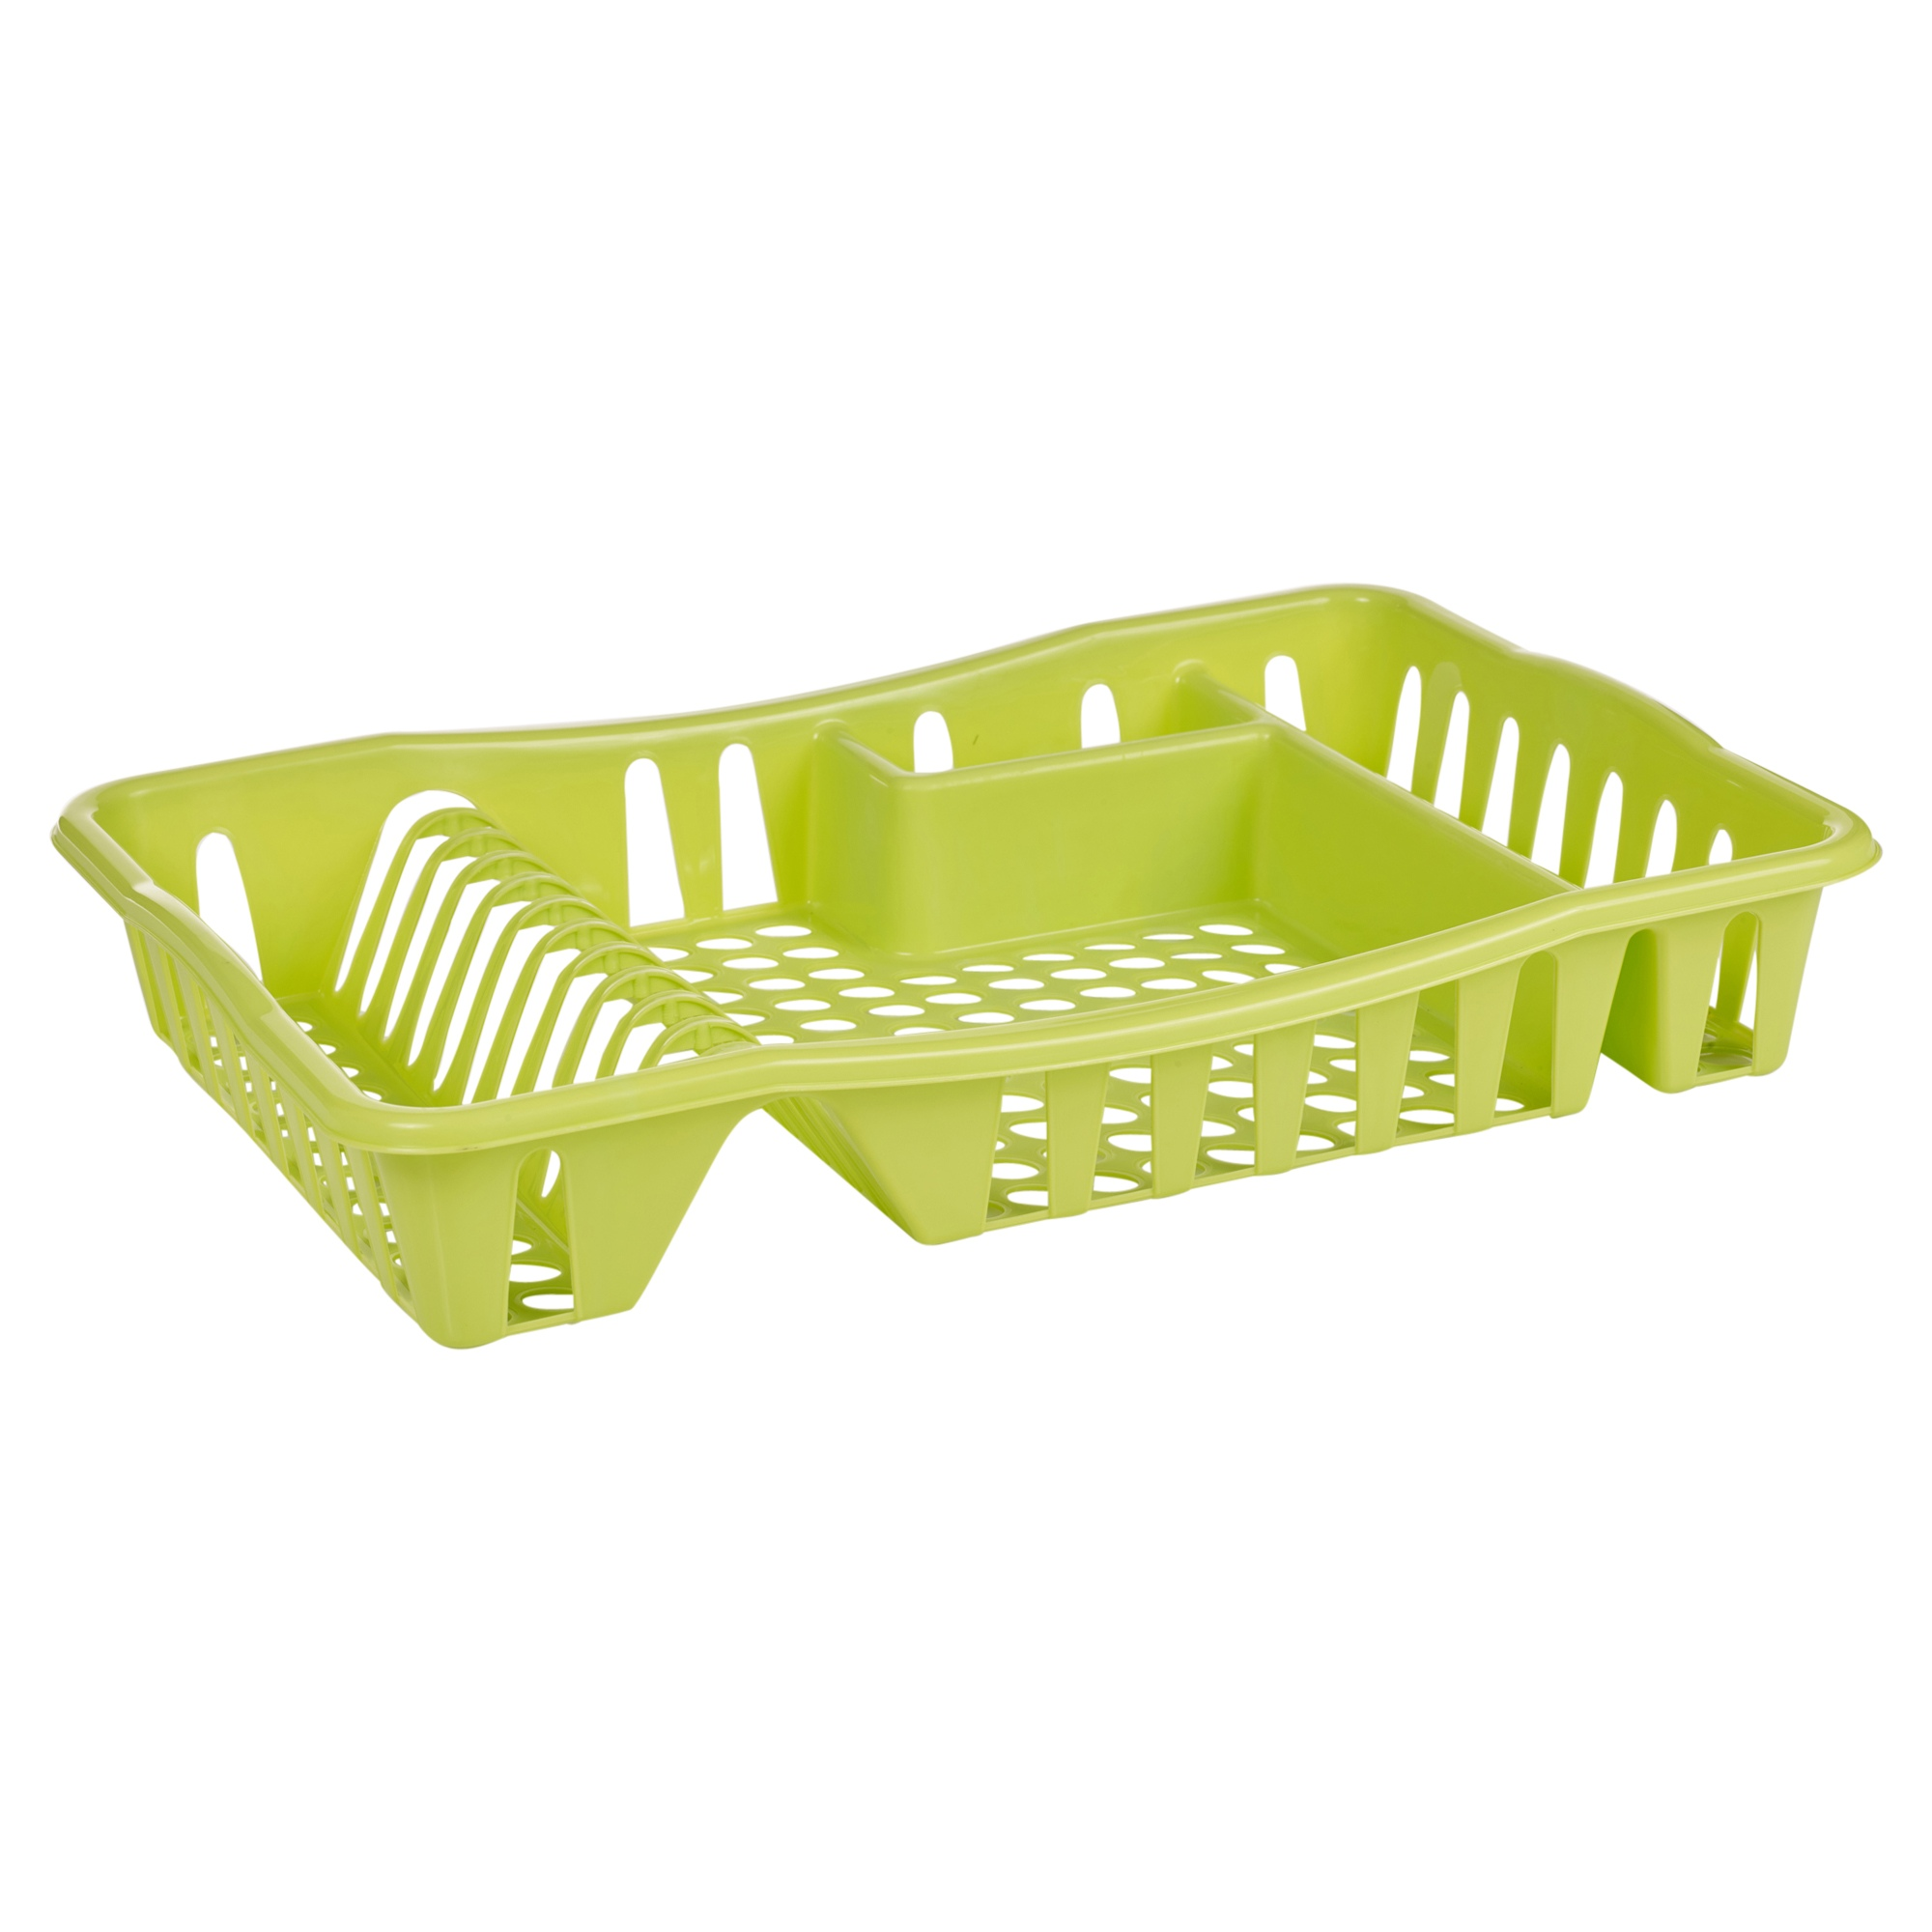 Washing Up Counter Dish Drainer Rack Drip Tray Stand